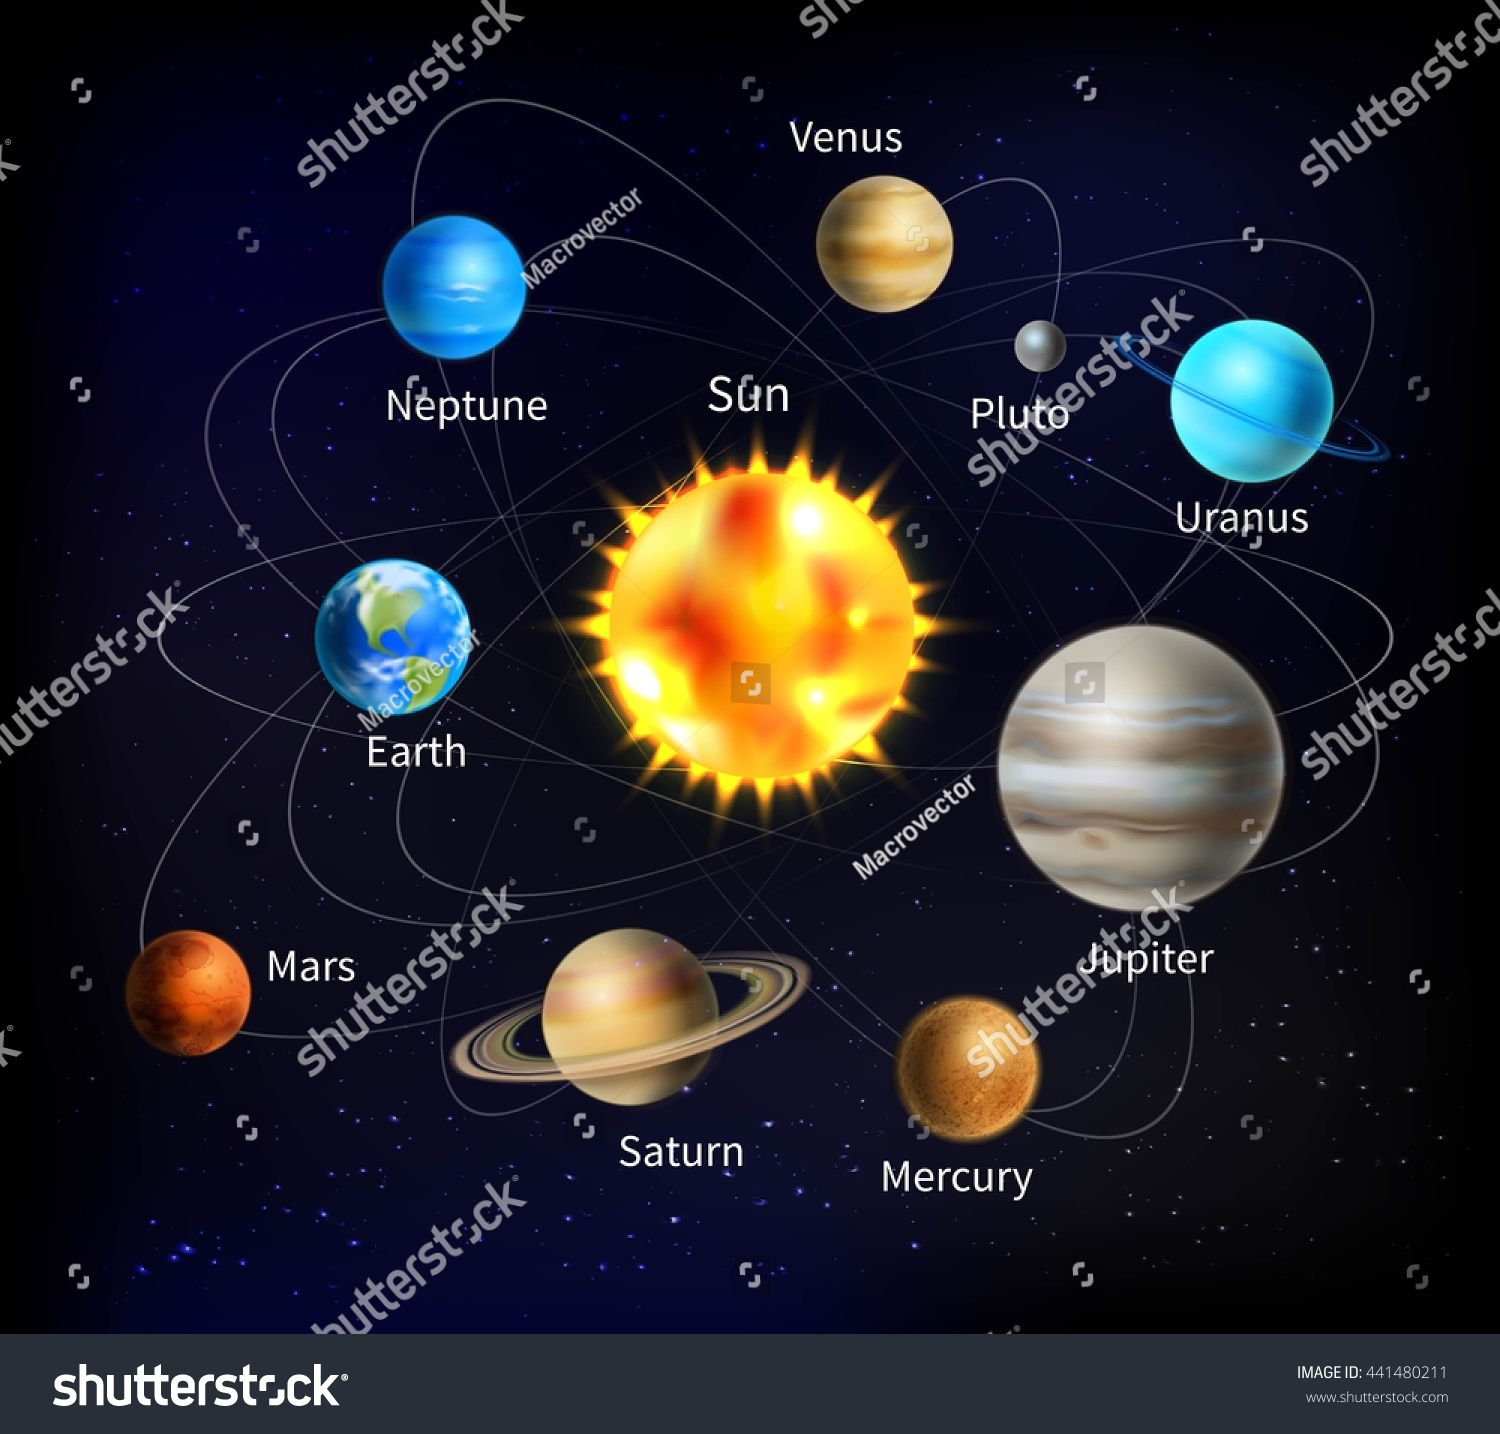 starry sky with planets - photo #42